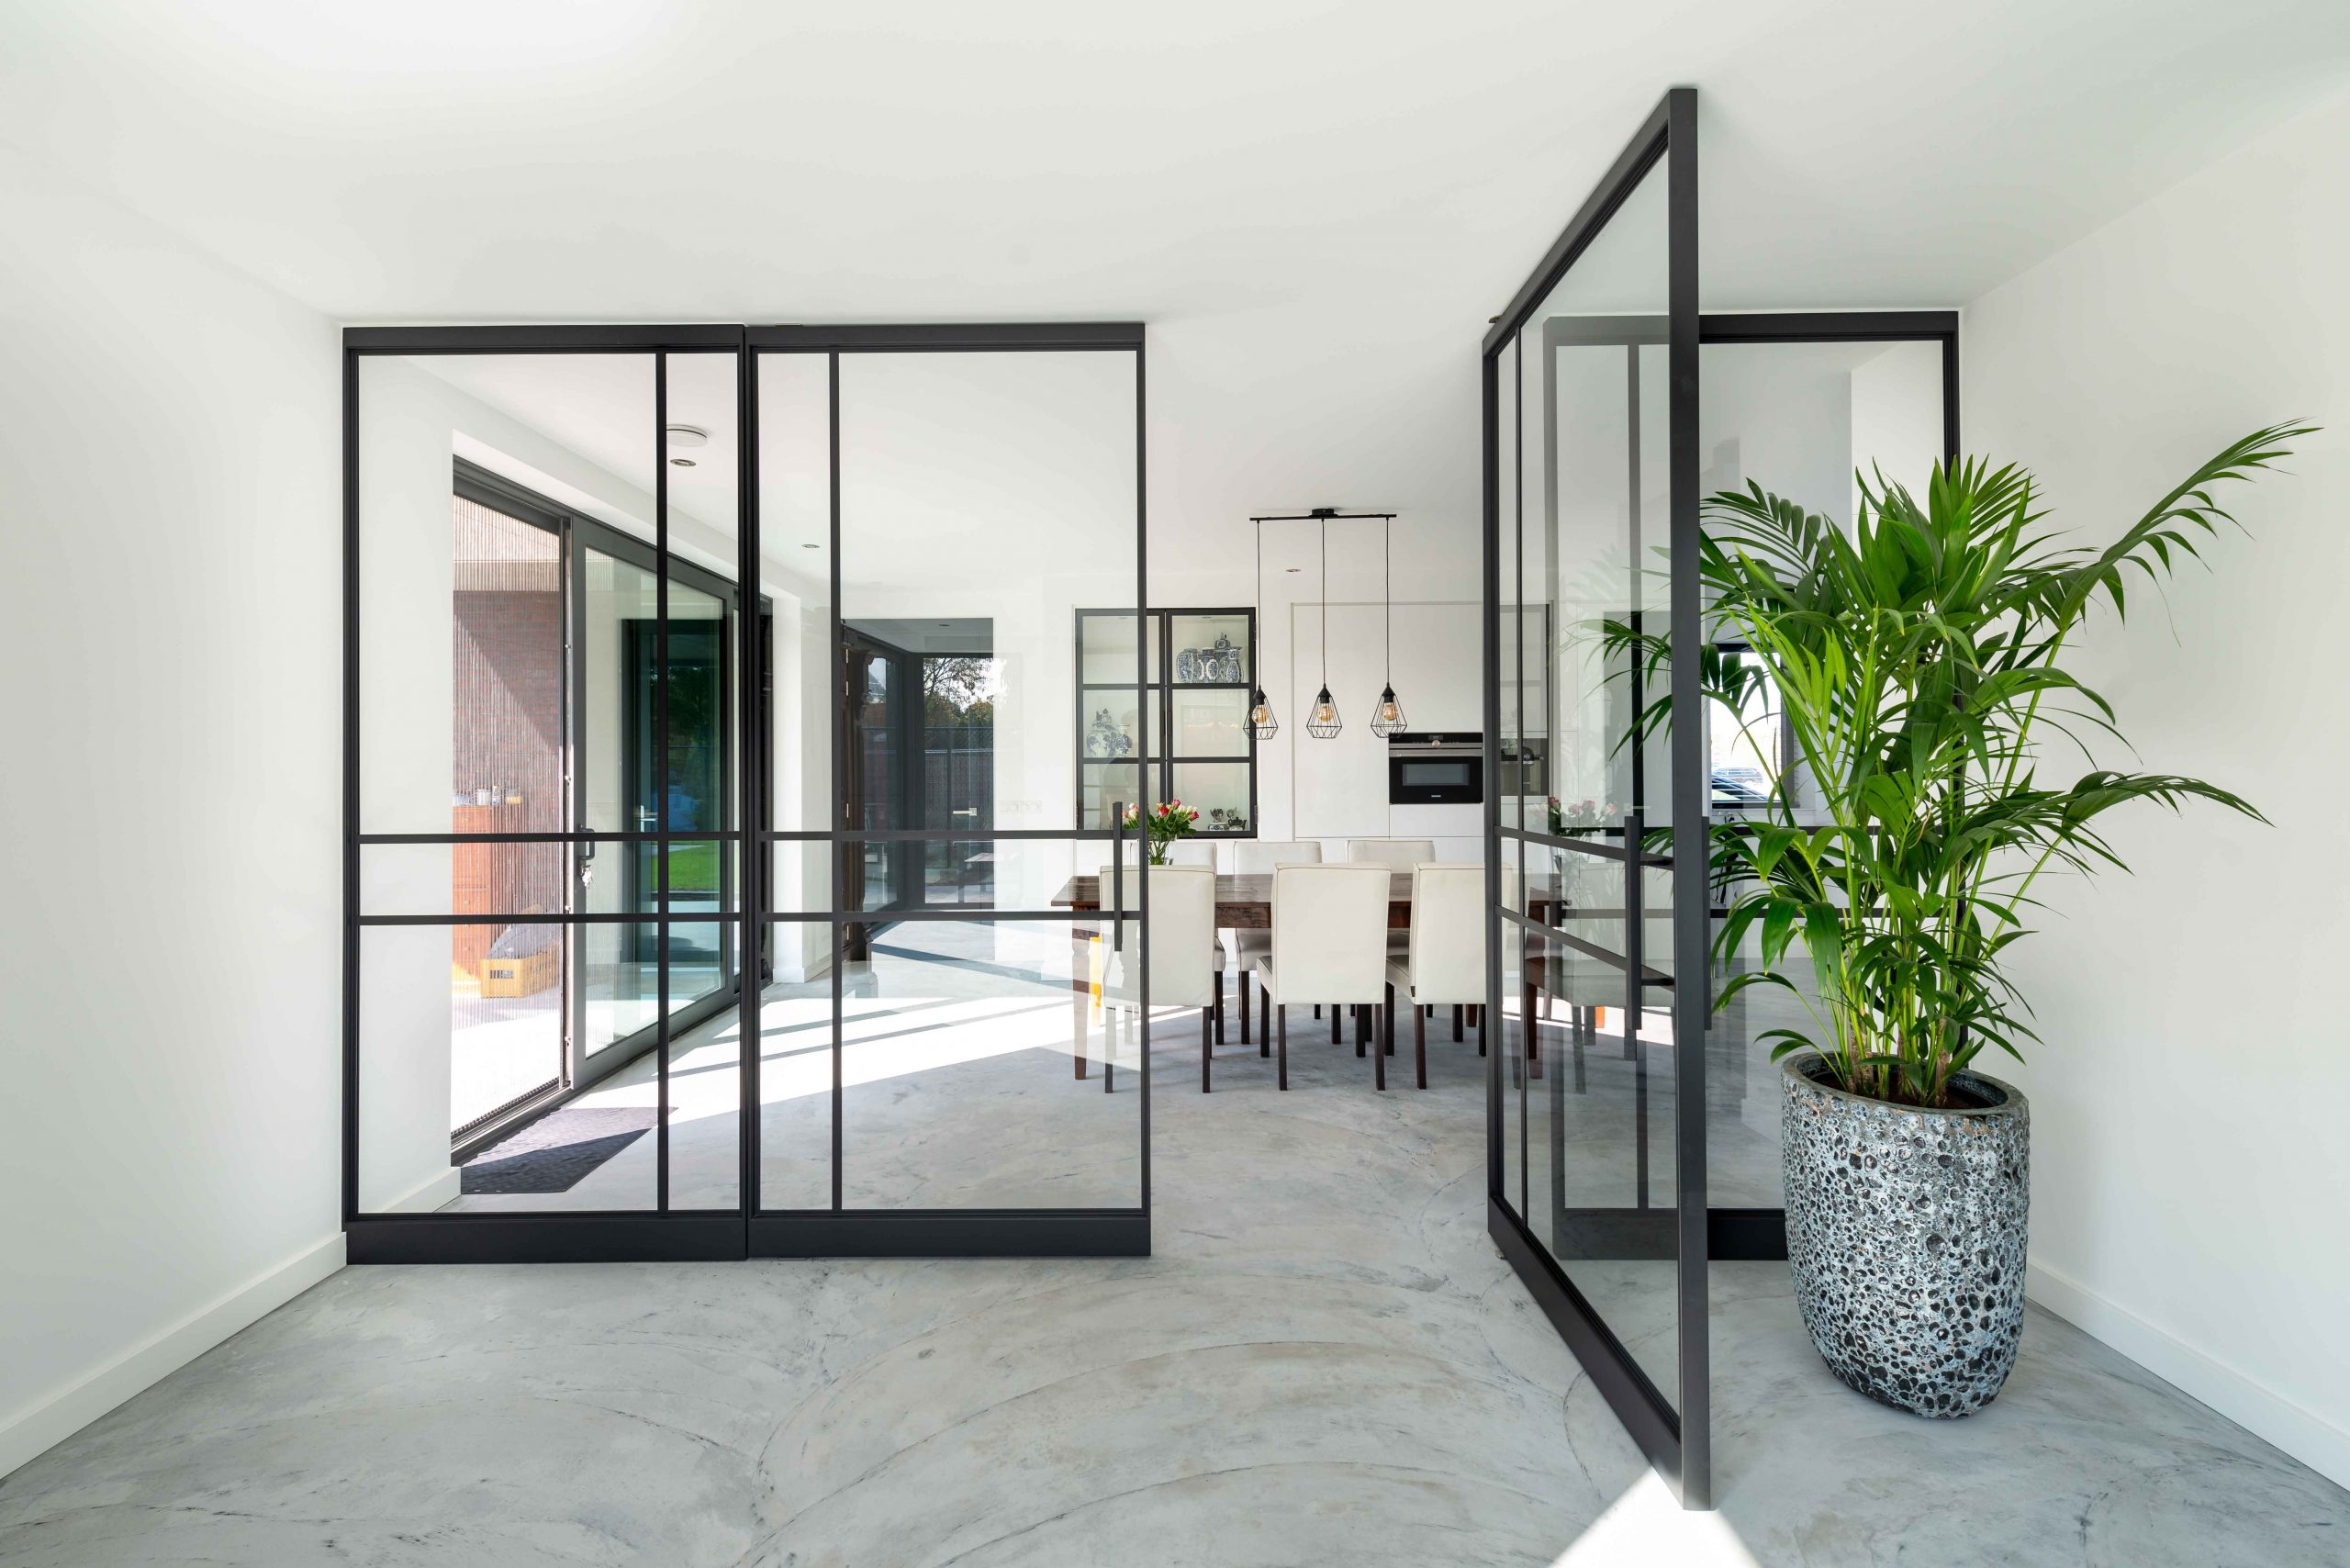 large-glass-pivot-doors-with-a-steel-framework-2-scaled.jpg